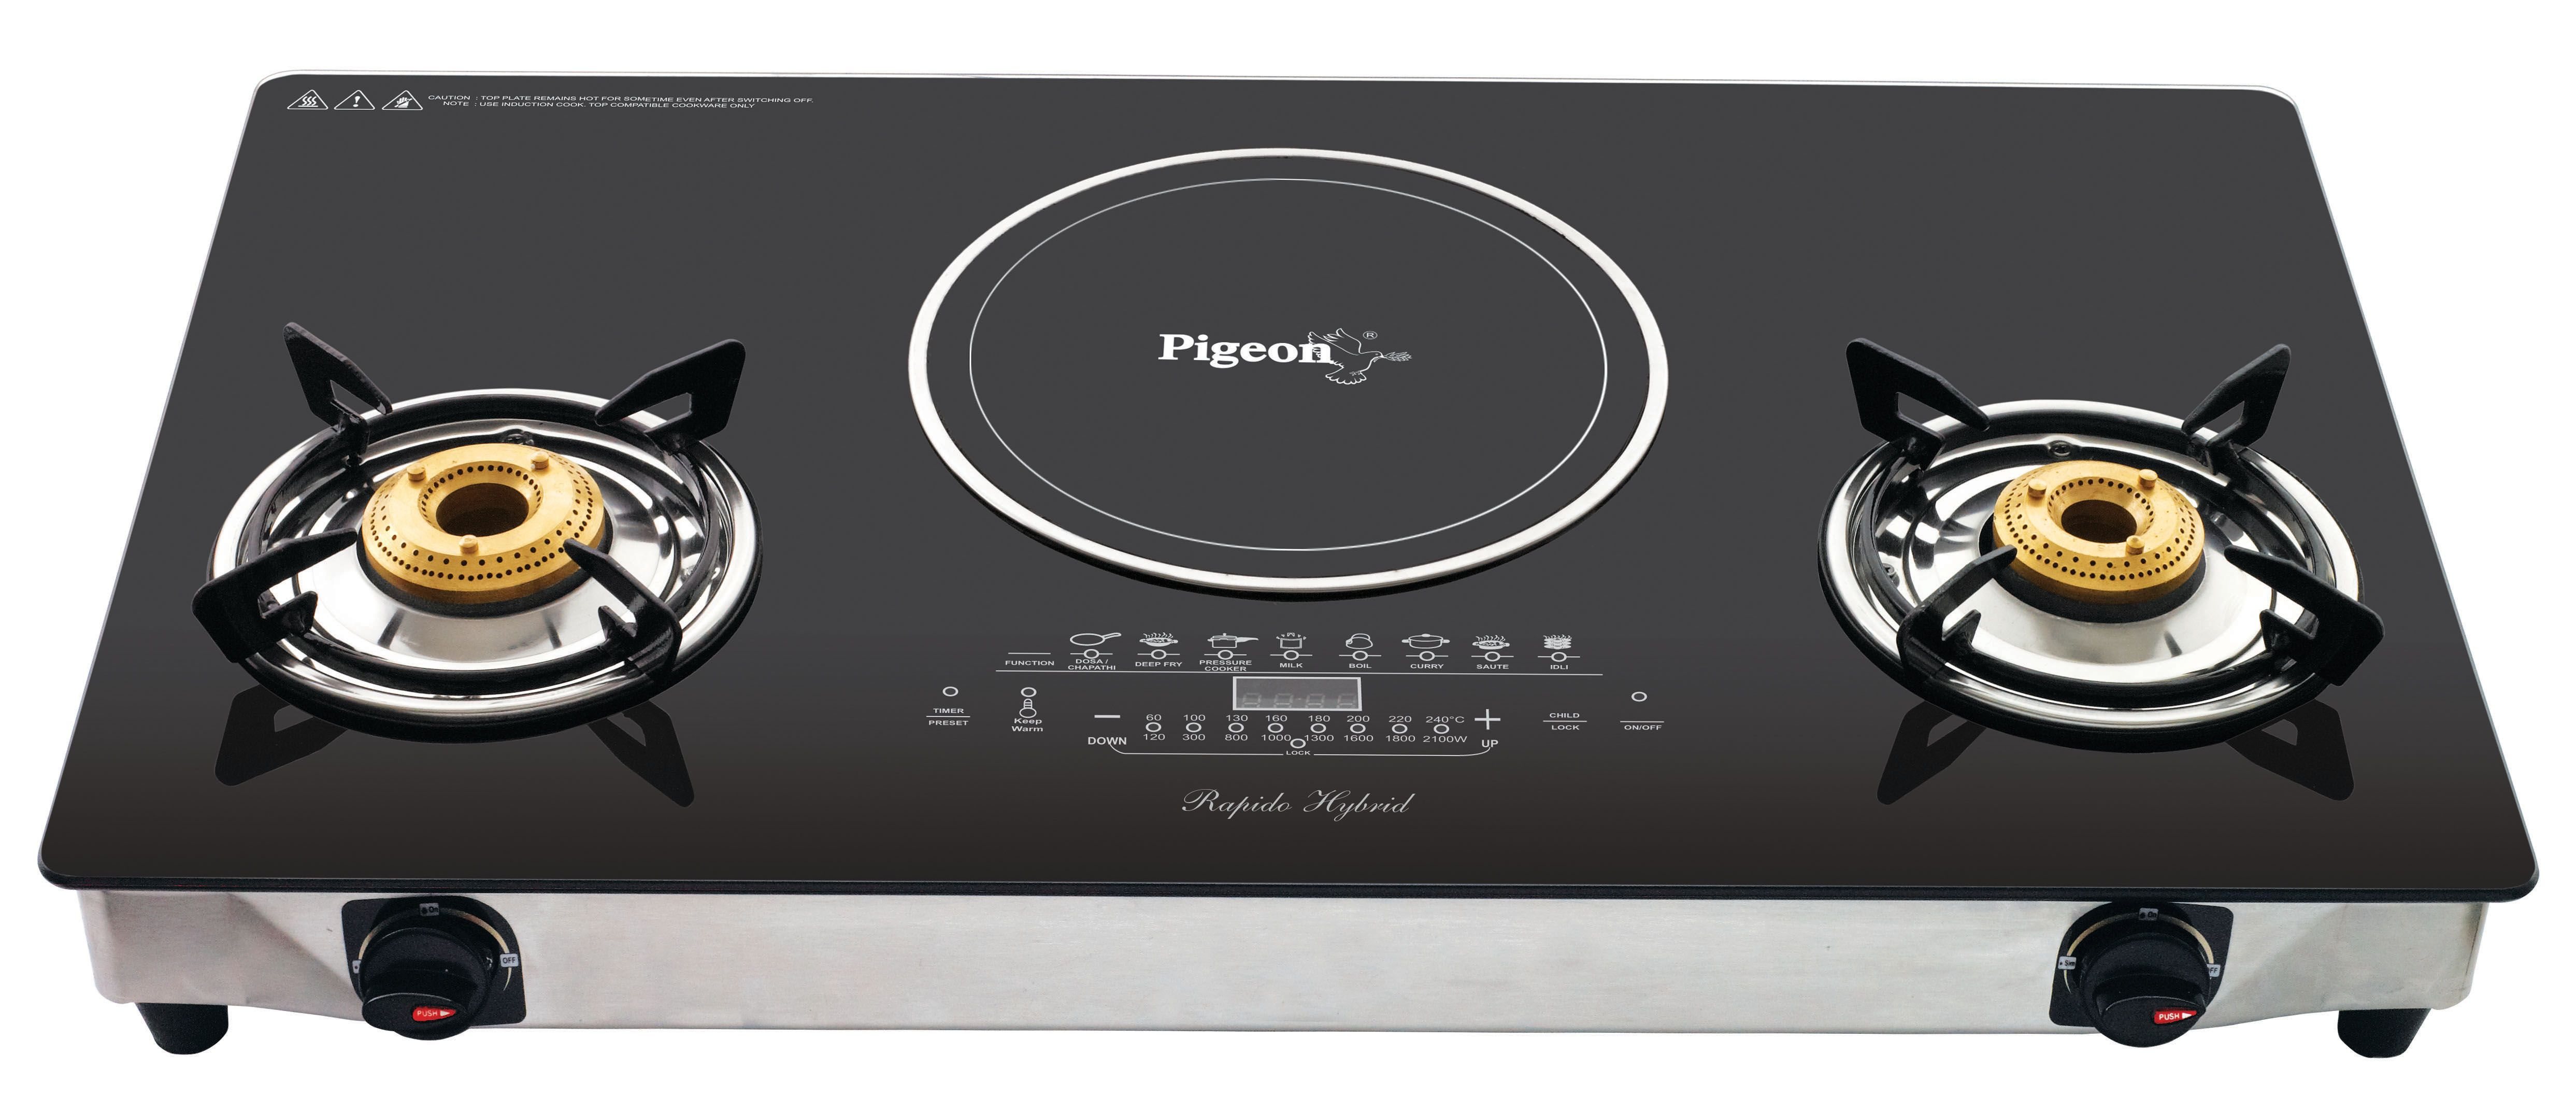 Lovely Induction Stove With Cooker Images